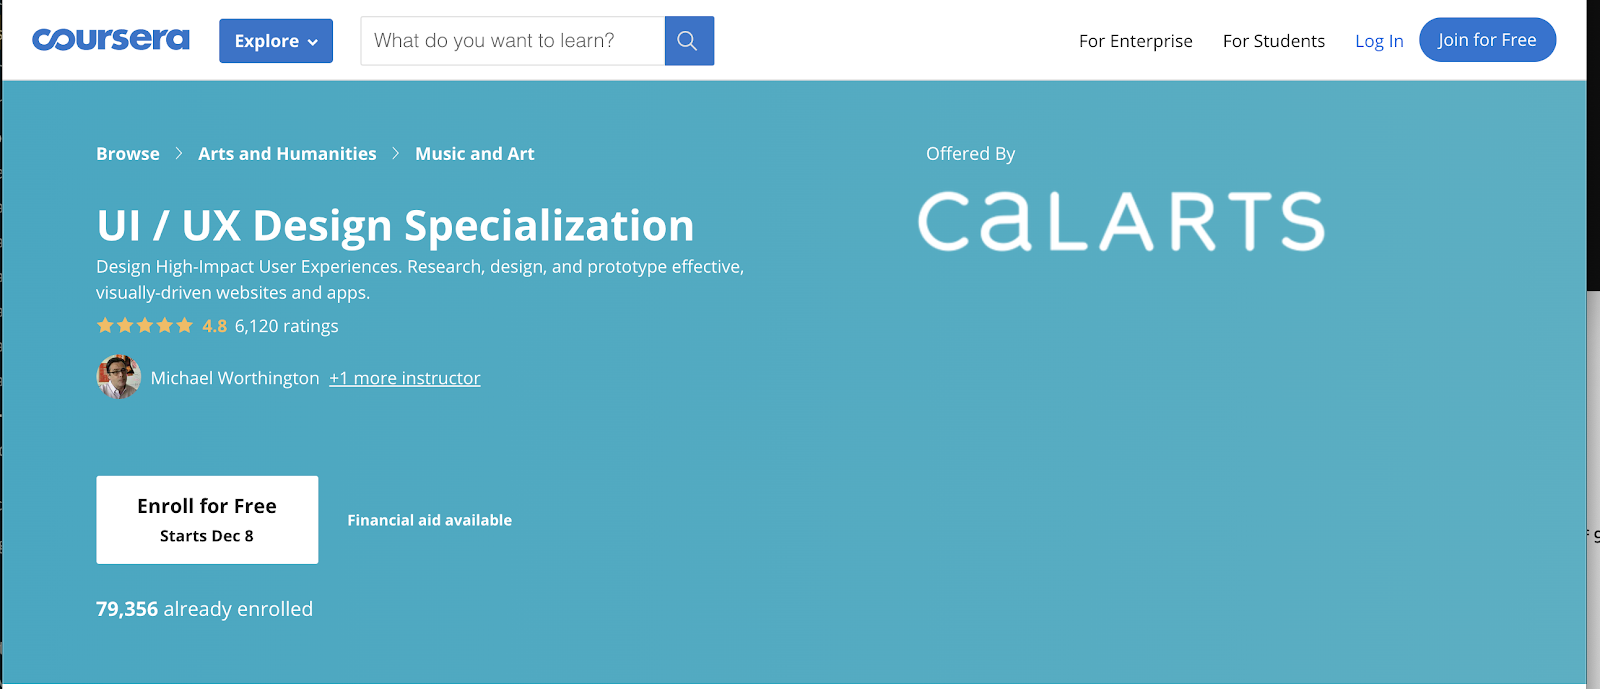 Banner for the Calarts UI/UX Design Specialization course on Coursera.